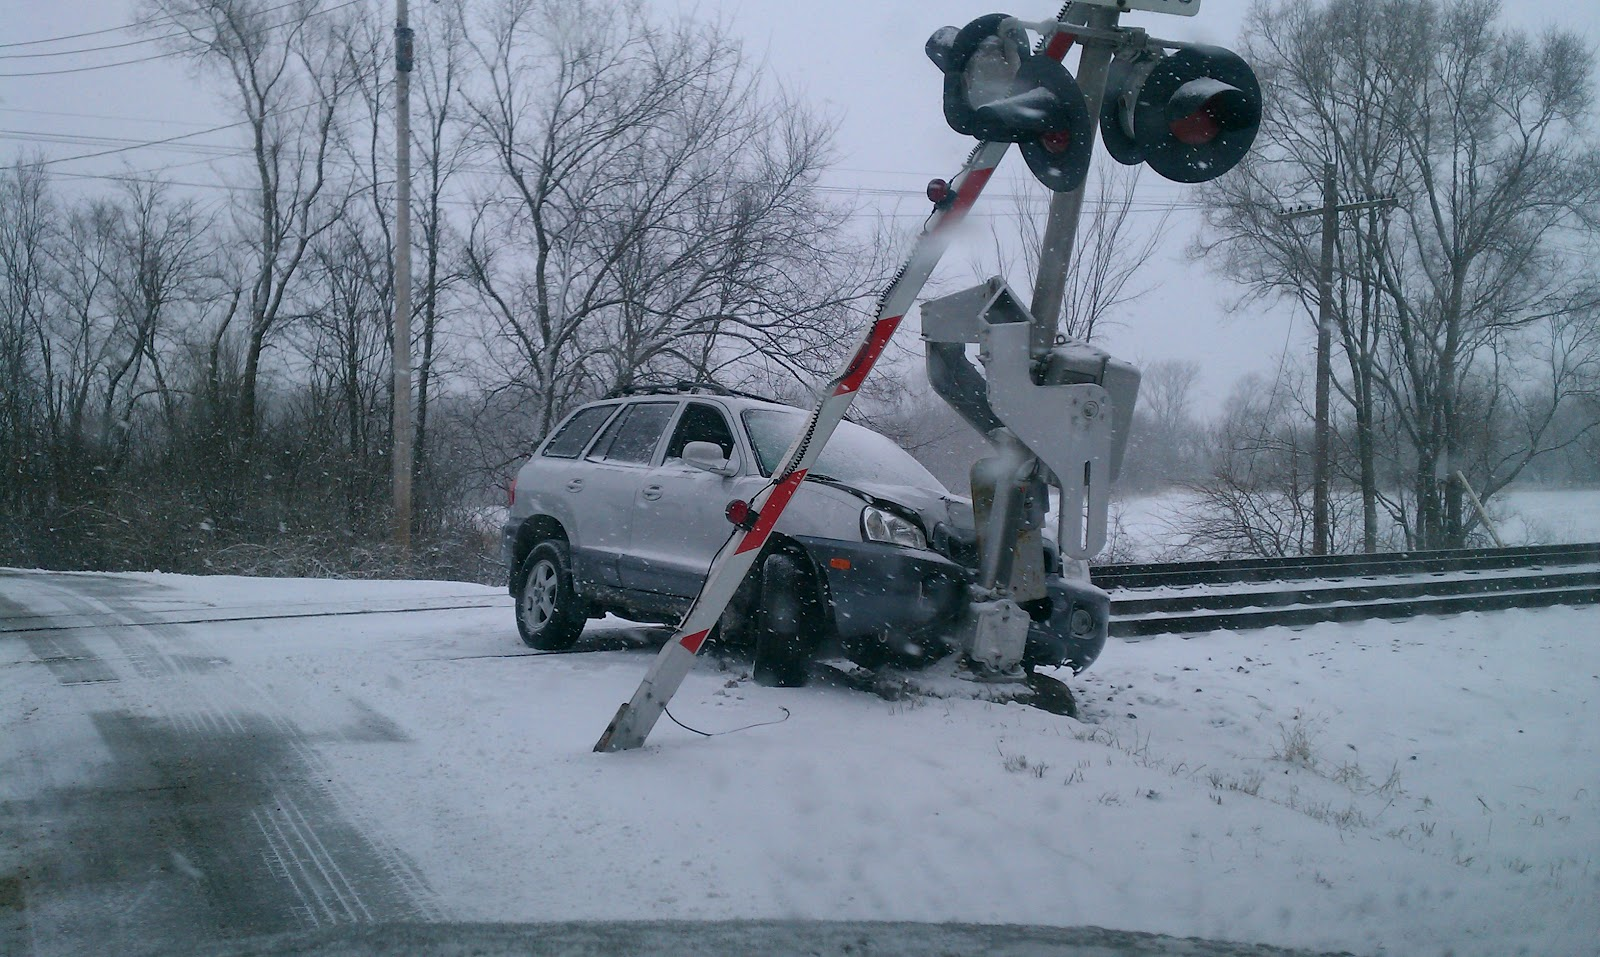 Woodstock Advocate: Driving (or not) on snow